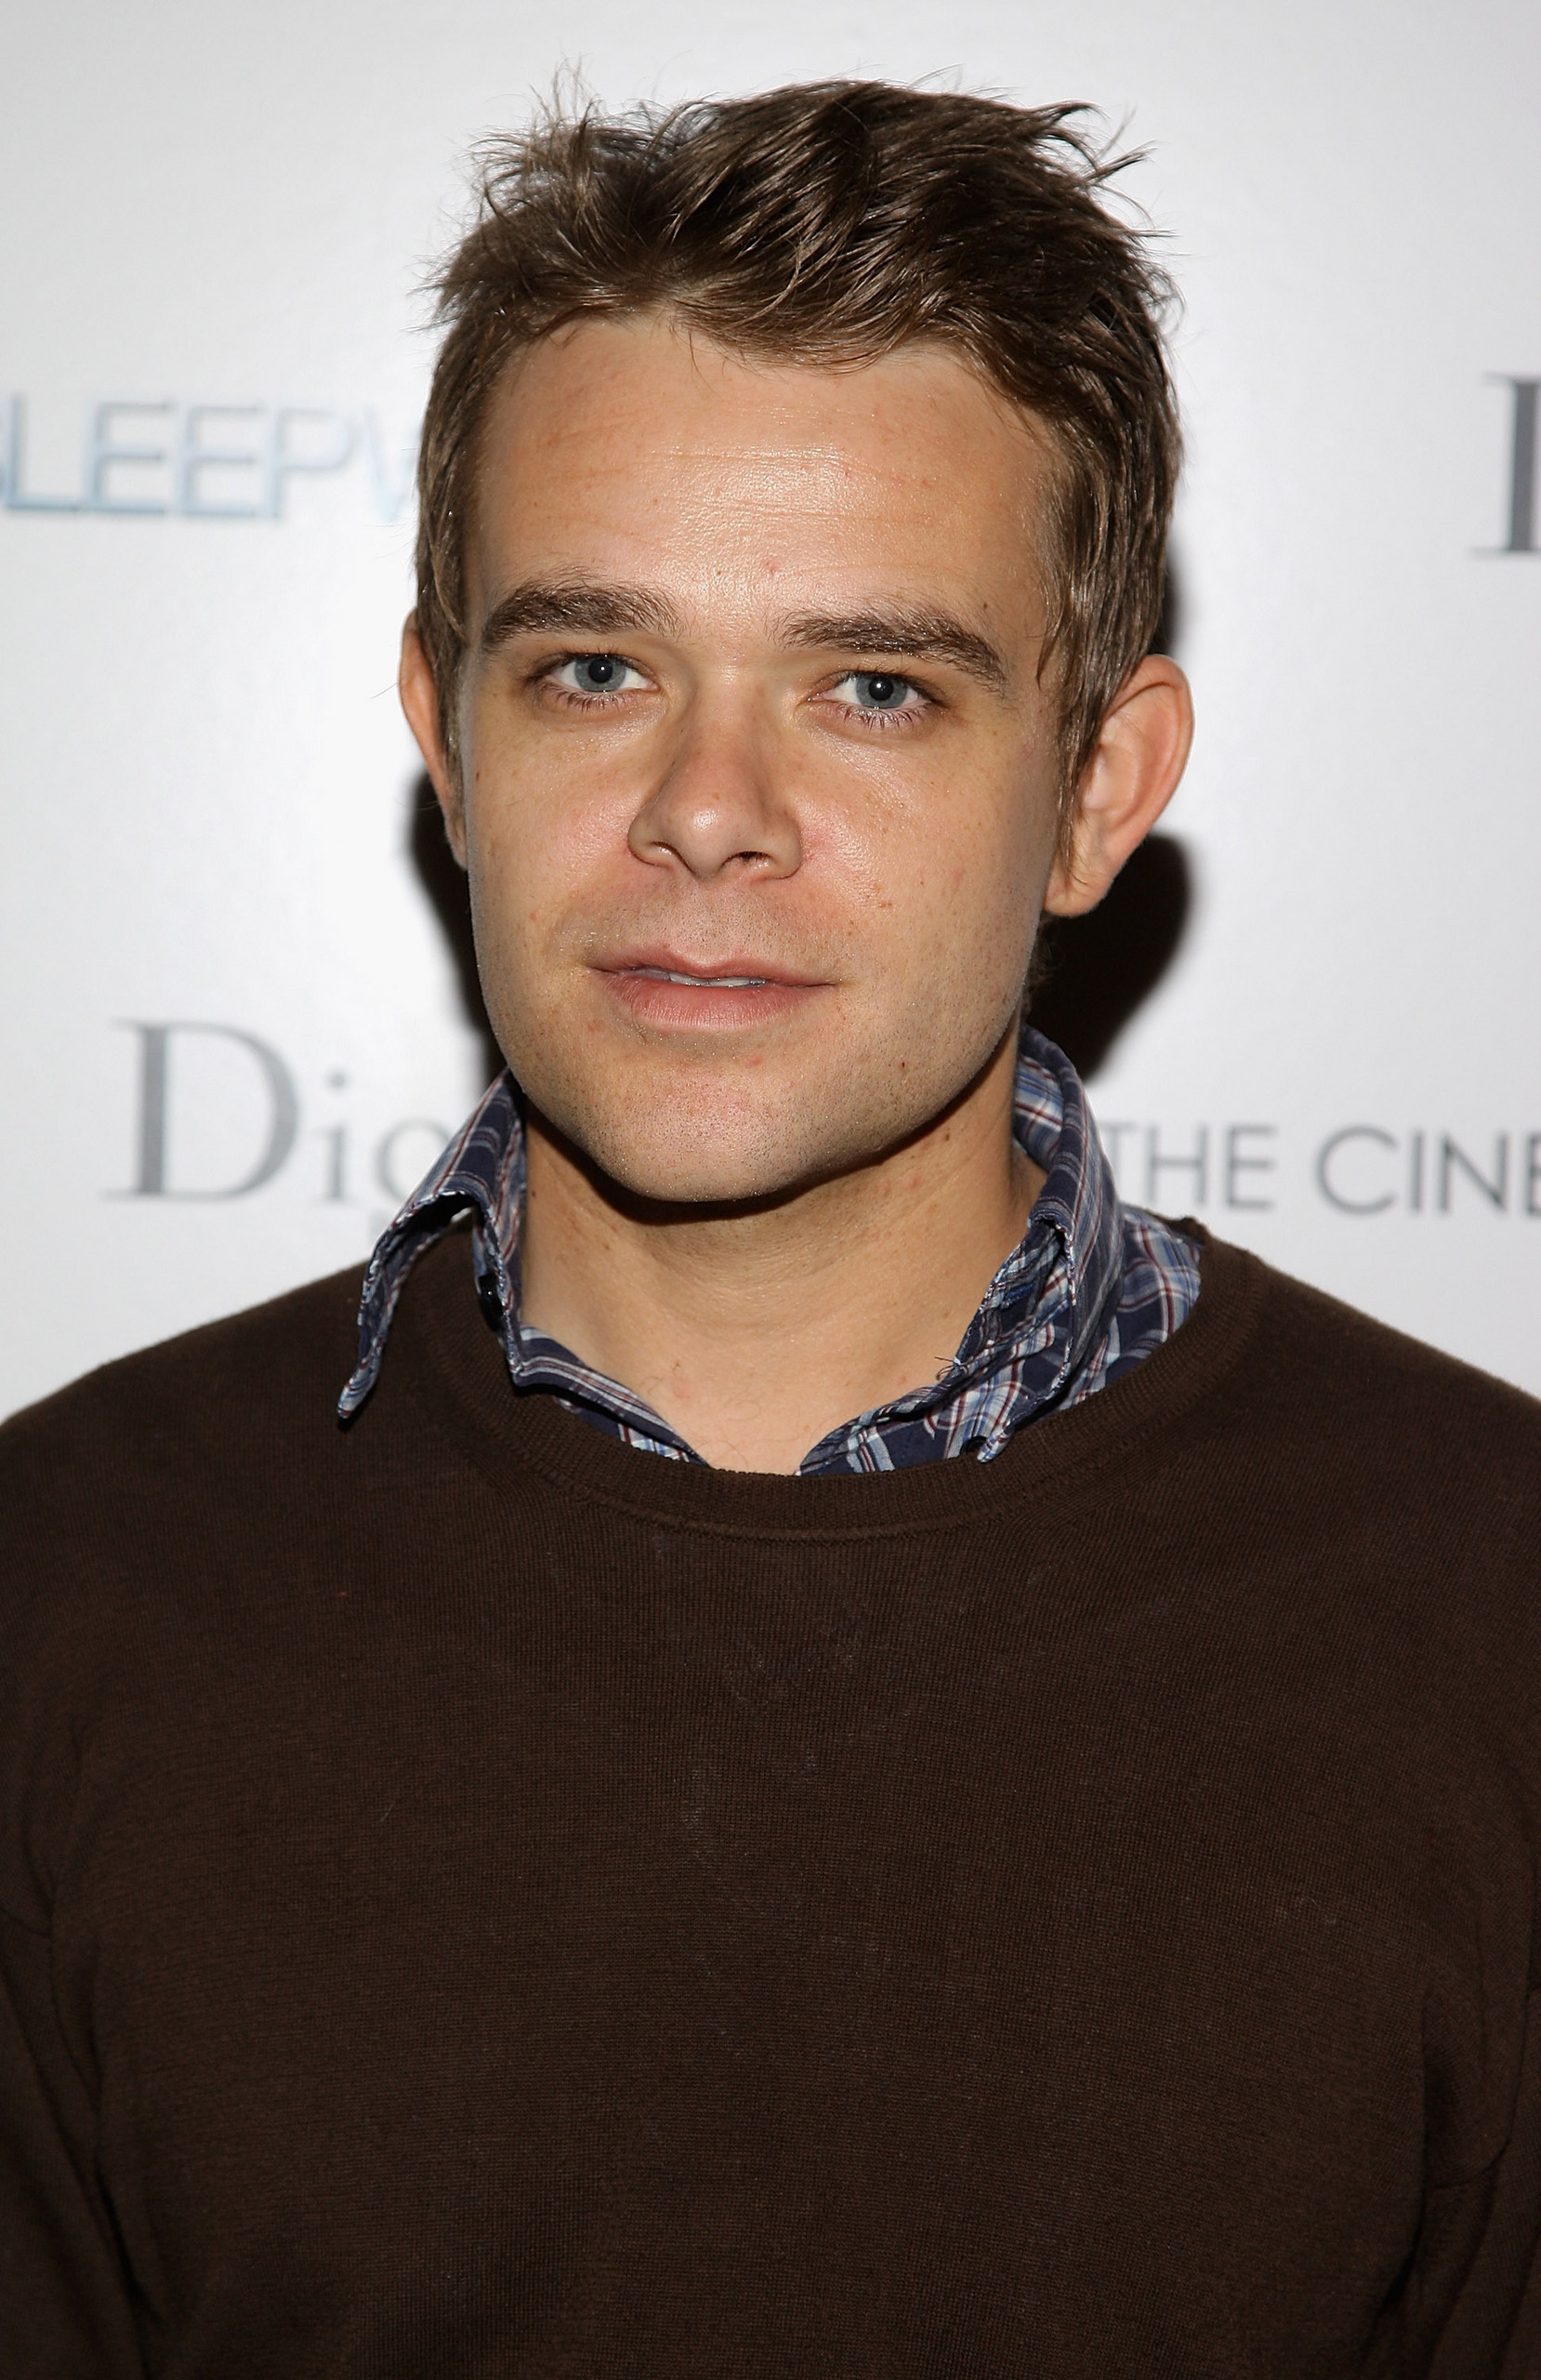 Terminator Hd Wallpaper Nick Stahl Images Nick Stahl Hd Wallpaper And Background